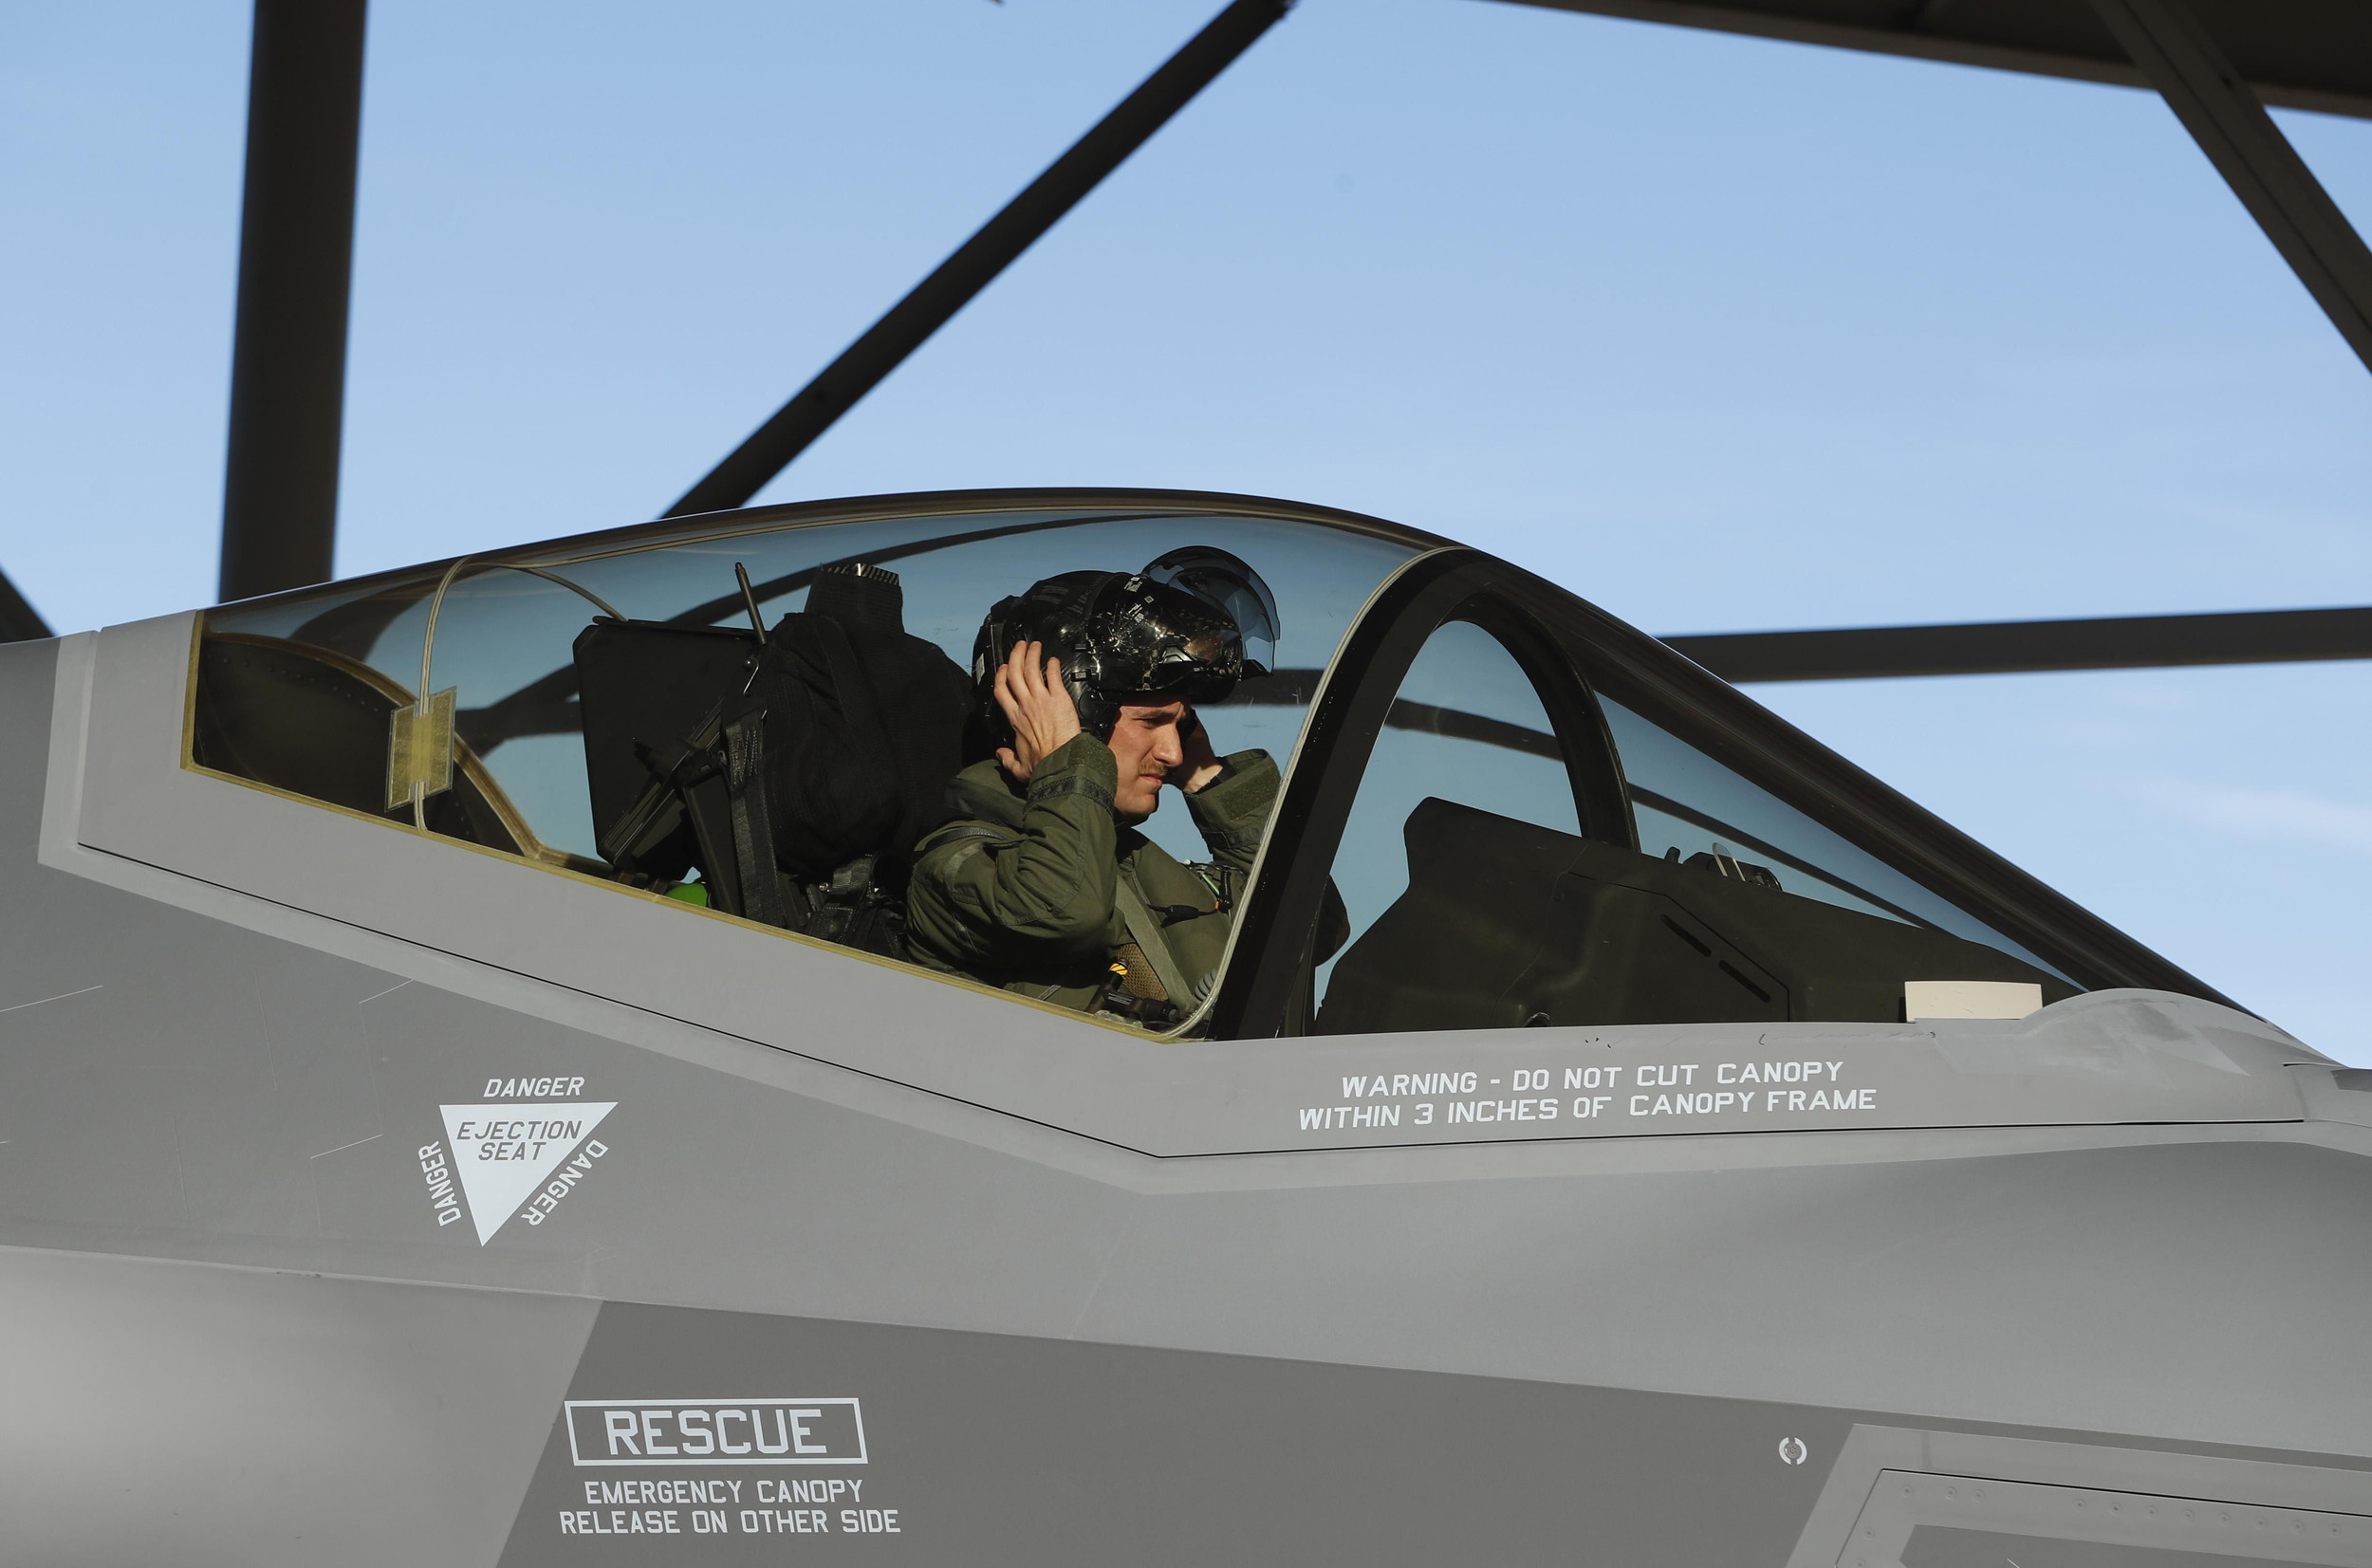 Cockpit Electromagnetic Fields May Be Harming Pilots, The U.S. Military Fears